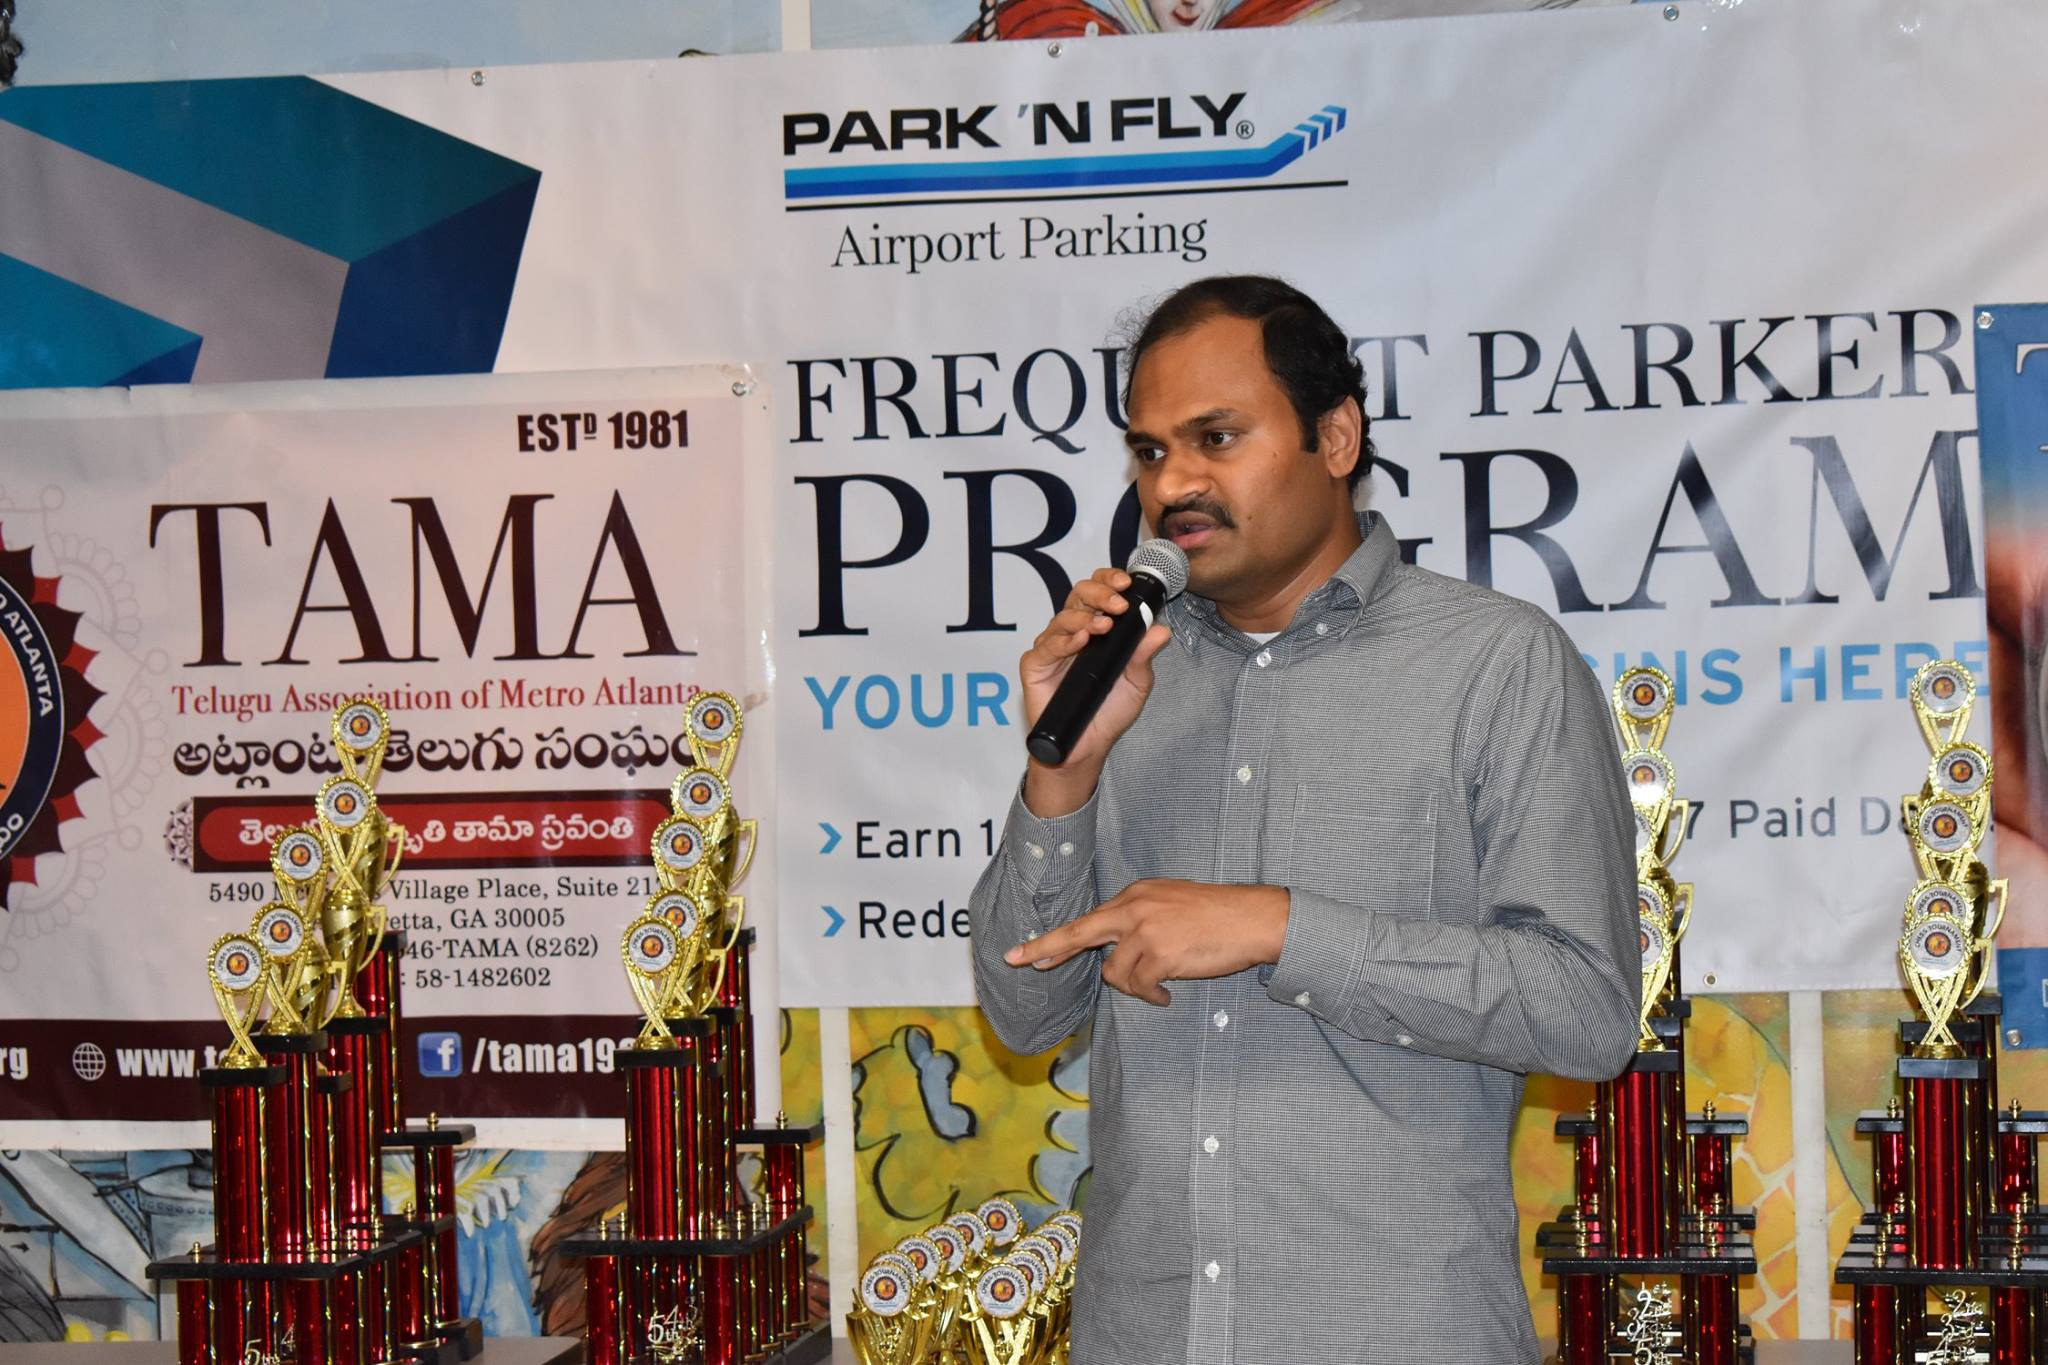 TAMA - Park N' Fly Chess Tournament